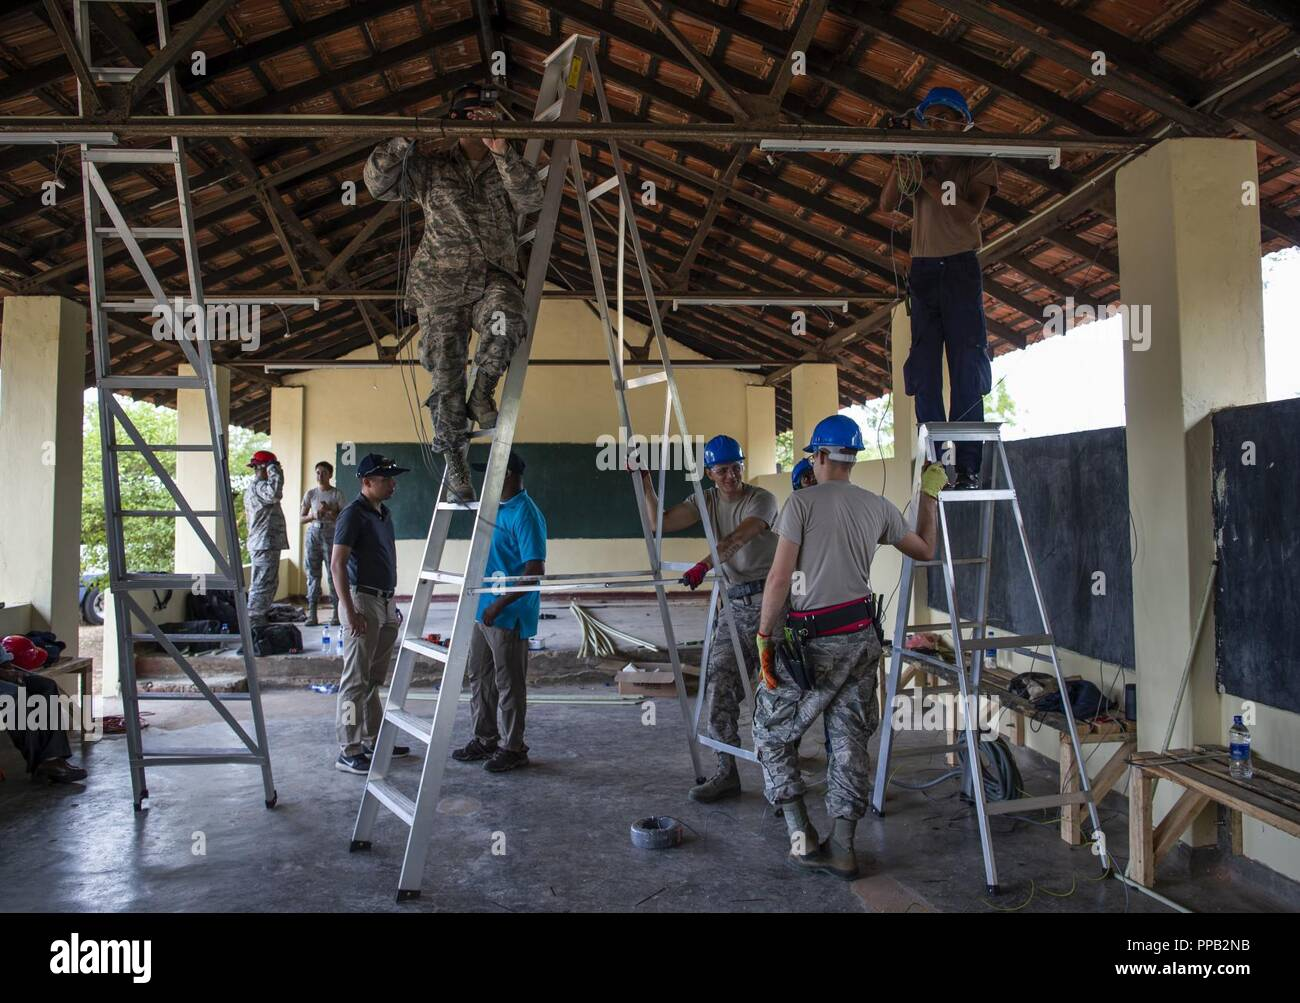 Sri Lanka Air Force Stock Photos Images House Wiring In Us And The Lankan Airmen Install Electrical A School